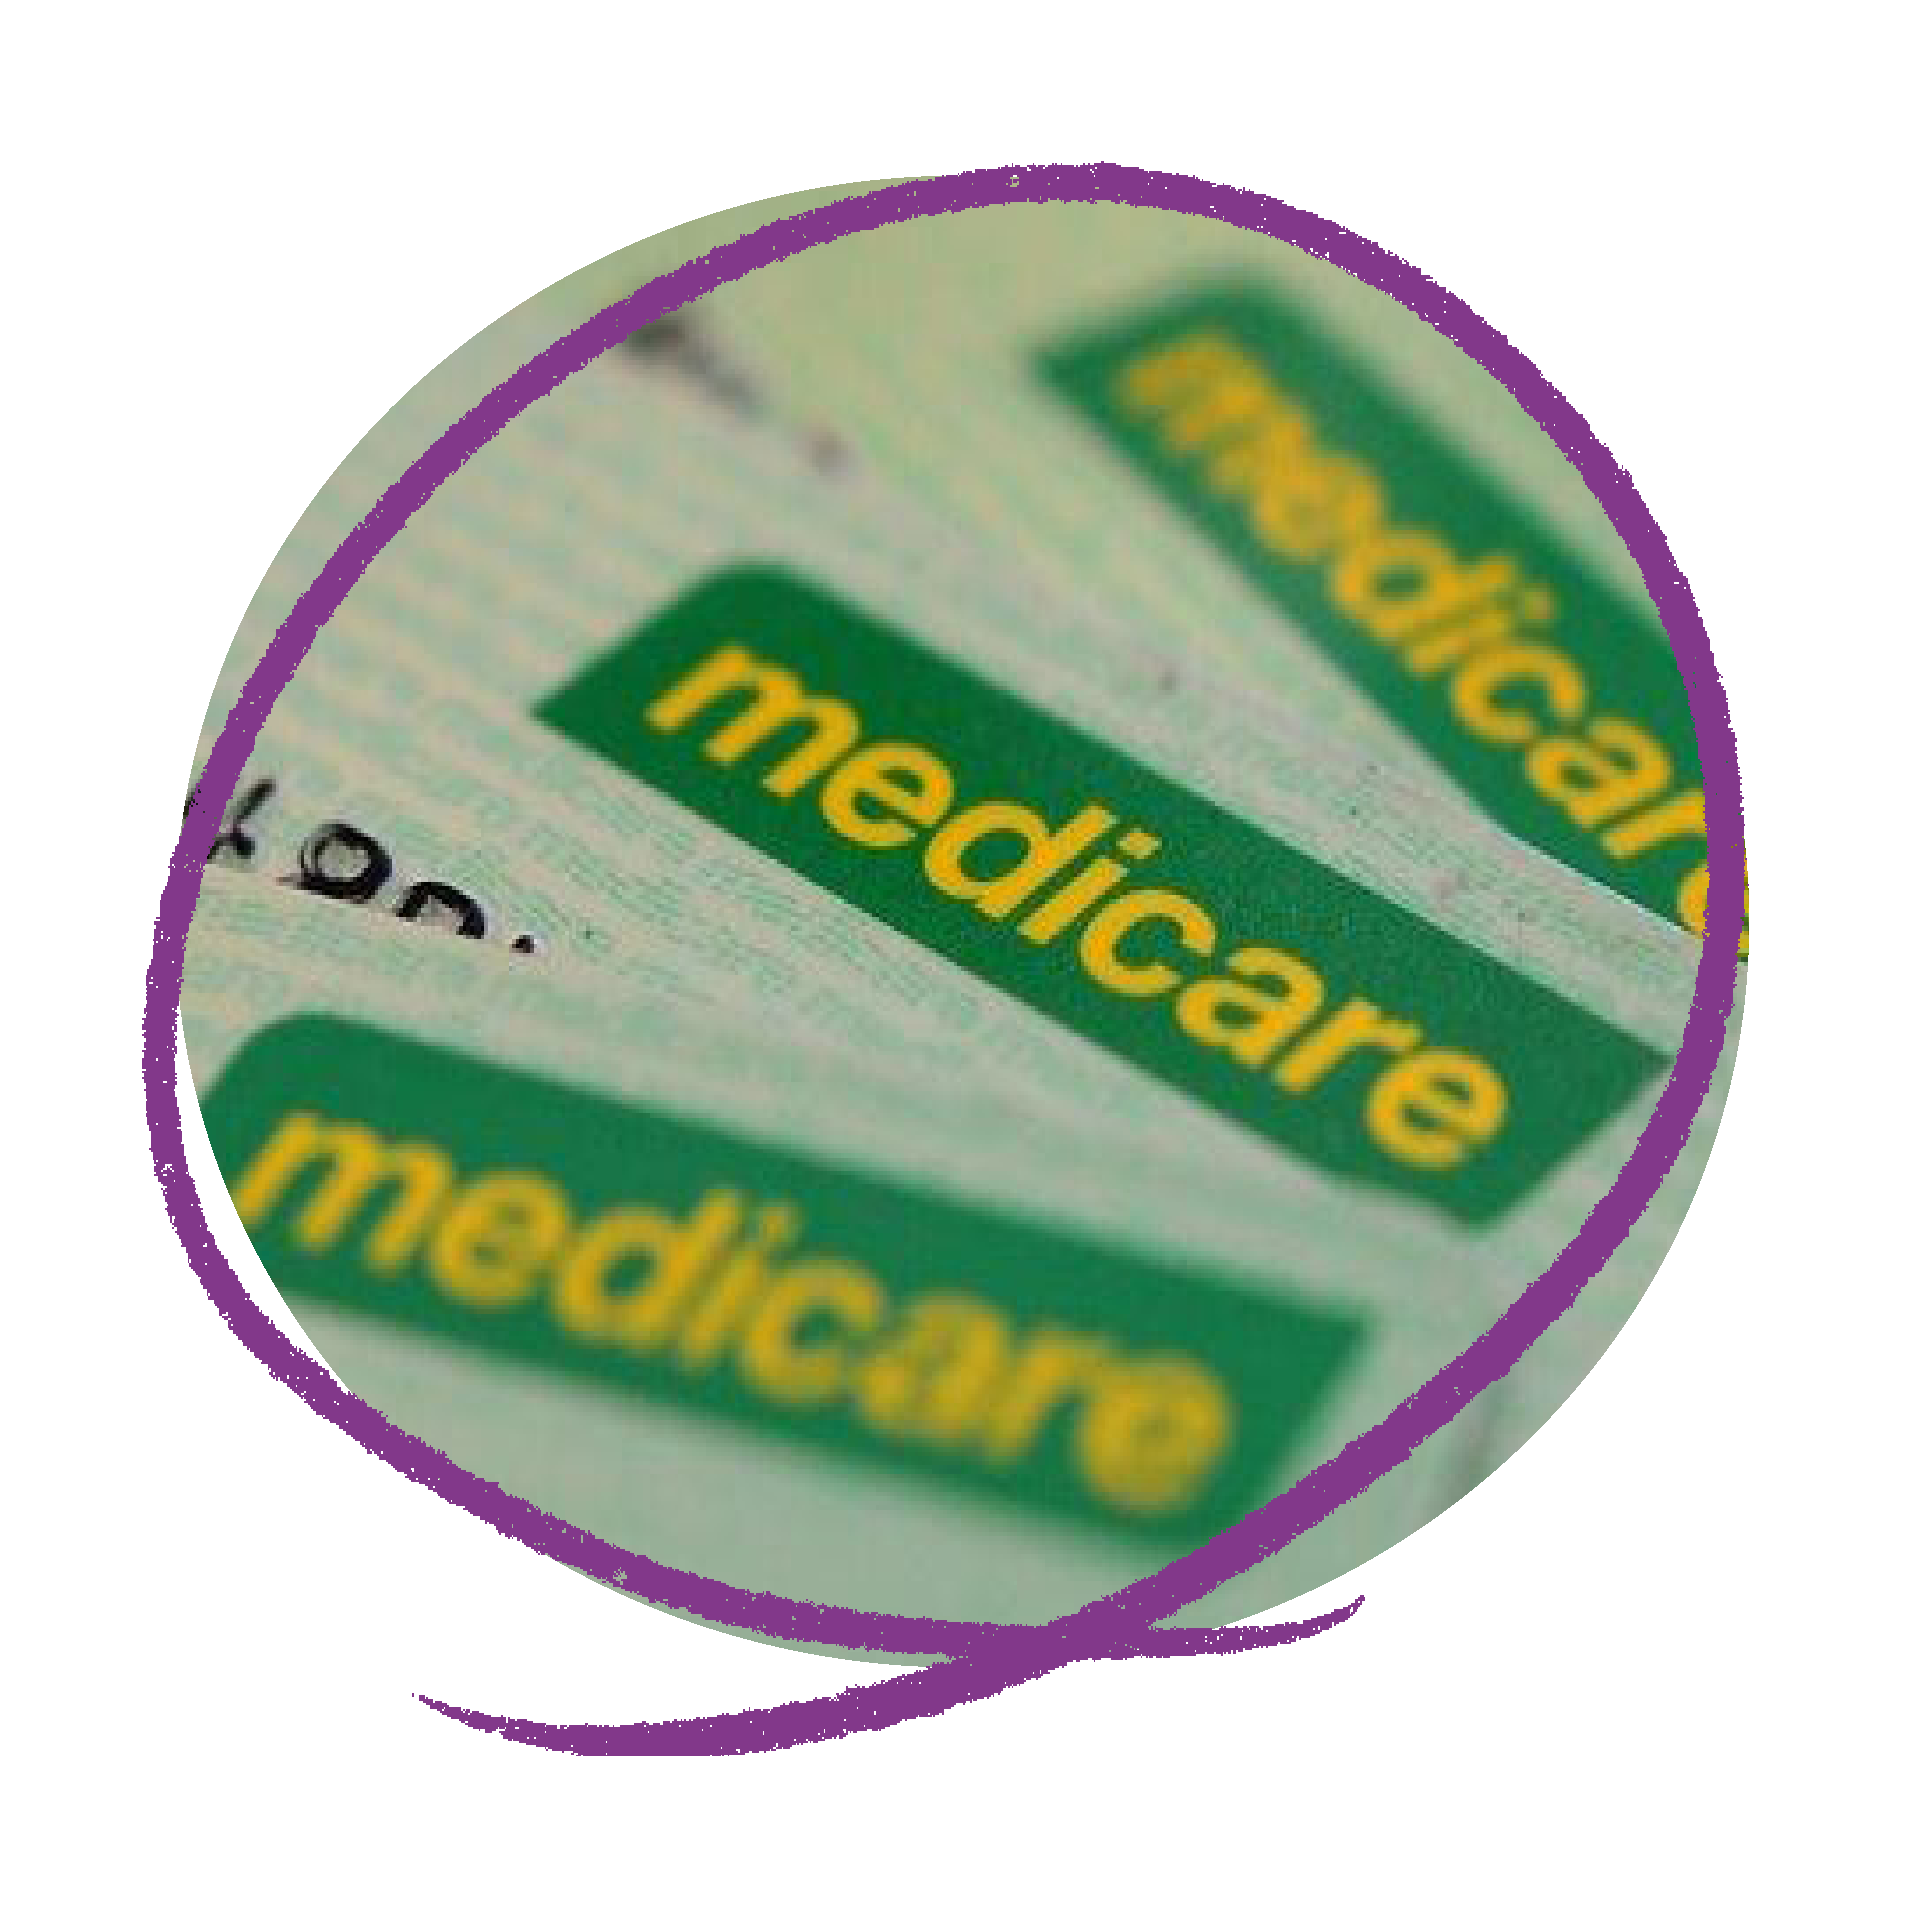 Photo of three Medicare cards layed on top of each other.